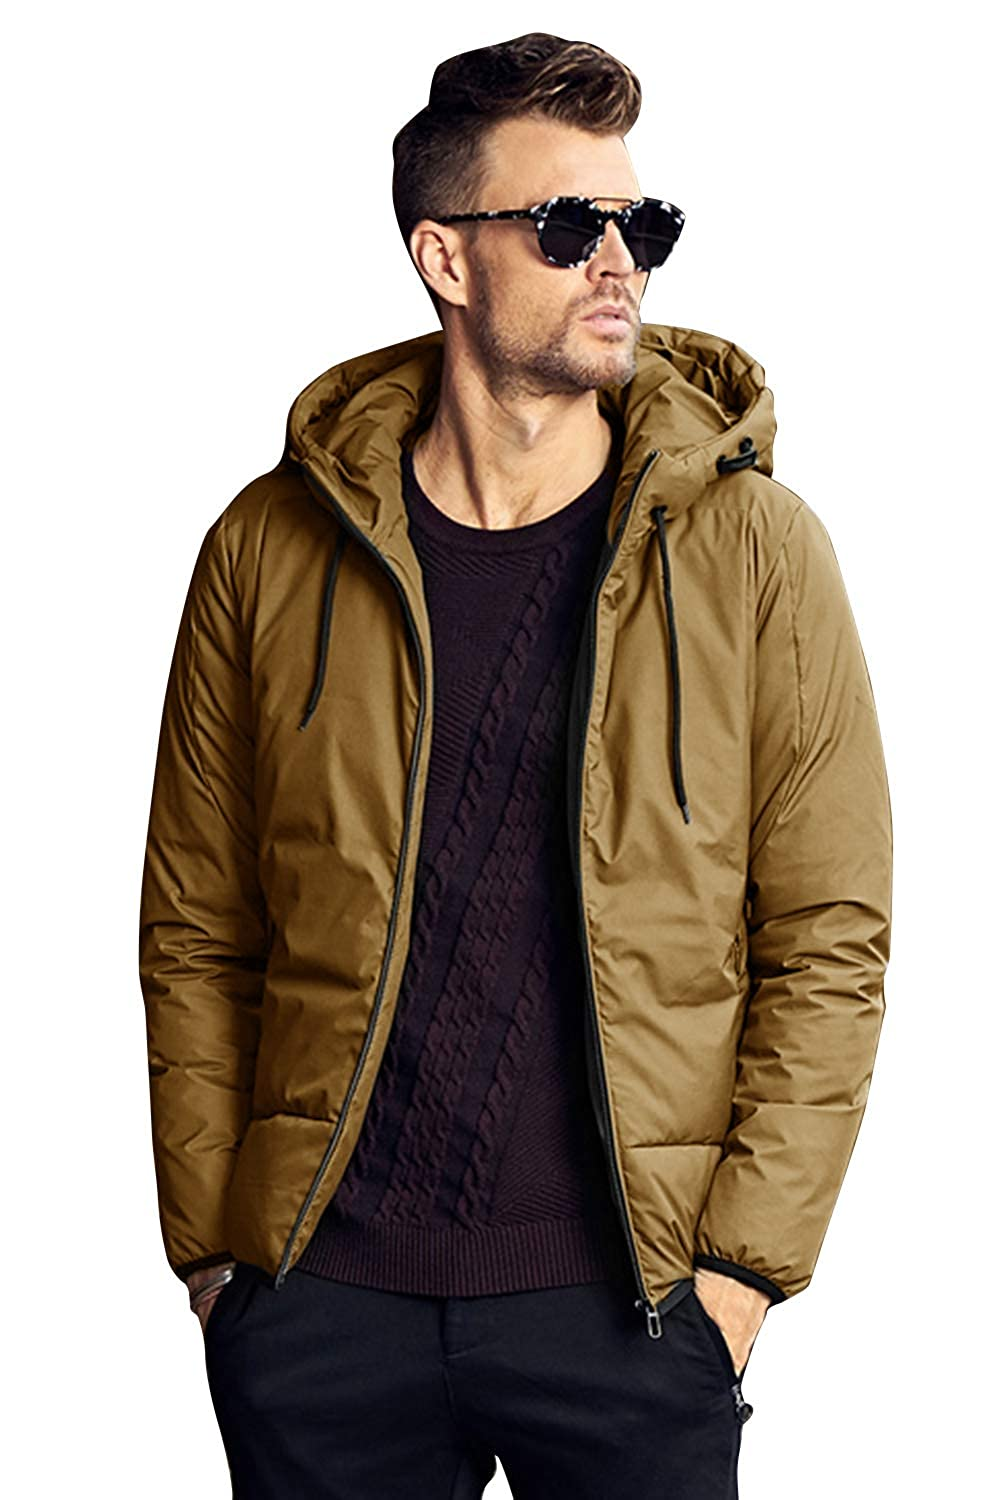 FLY HAWK Mens Down Puffer Jacket Hooded Packable Water Resistant Light Winter Coat